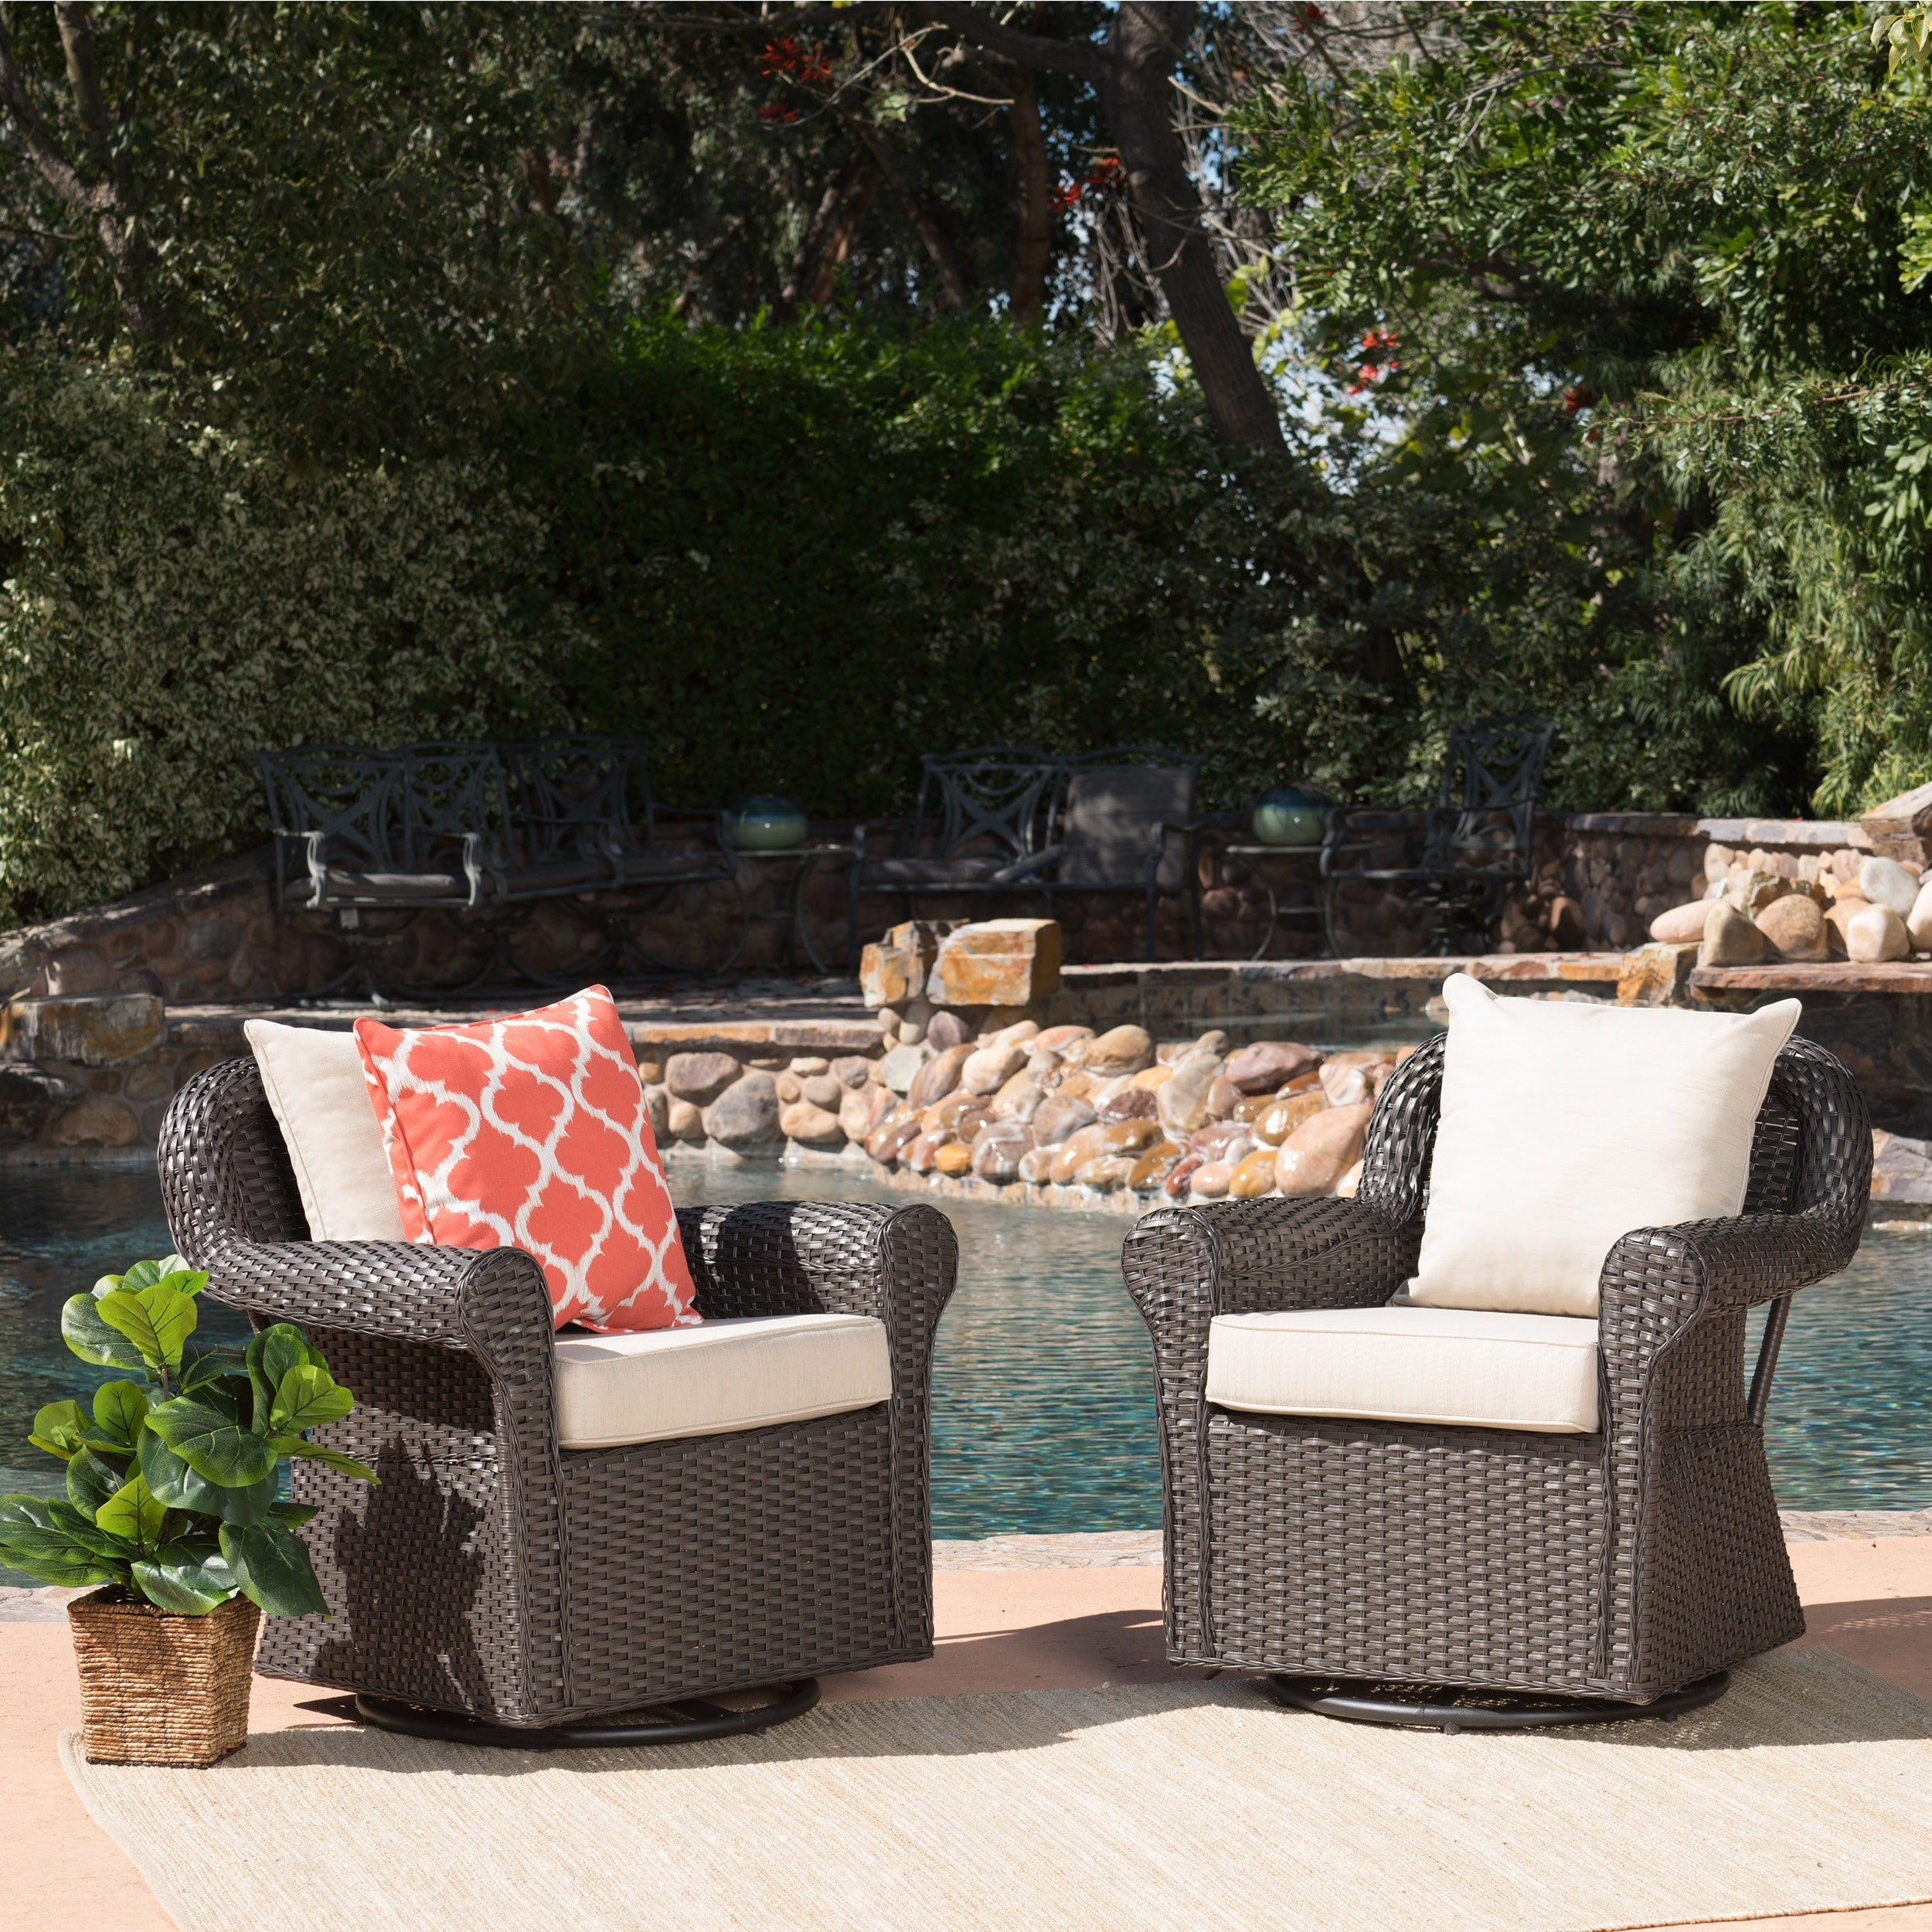 christopher knight home amaya outdoor wicker swivel rocking chair with cushion set of 2 - Swivel Patio Chairs